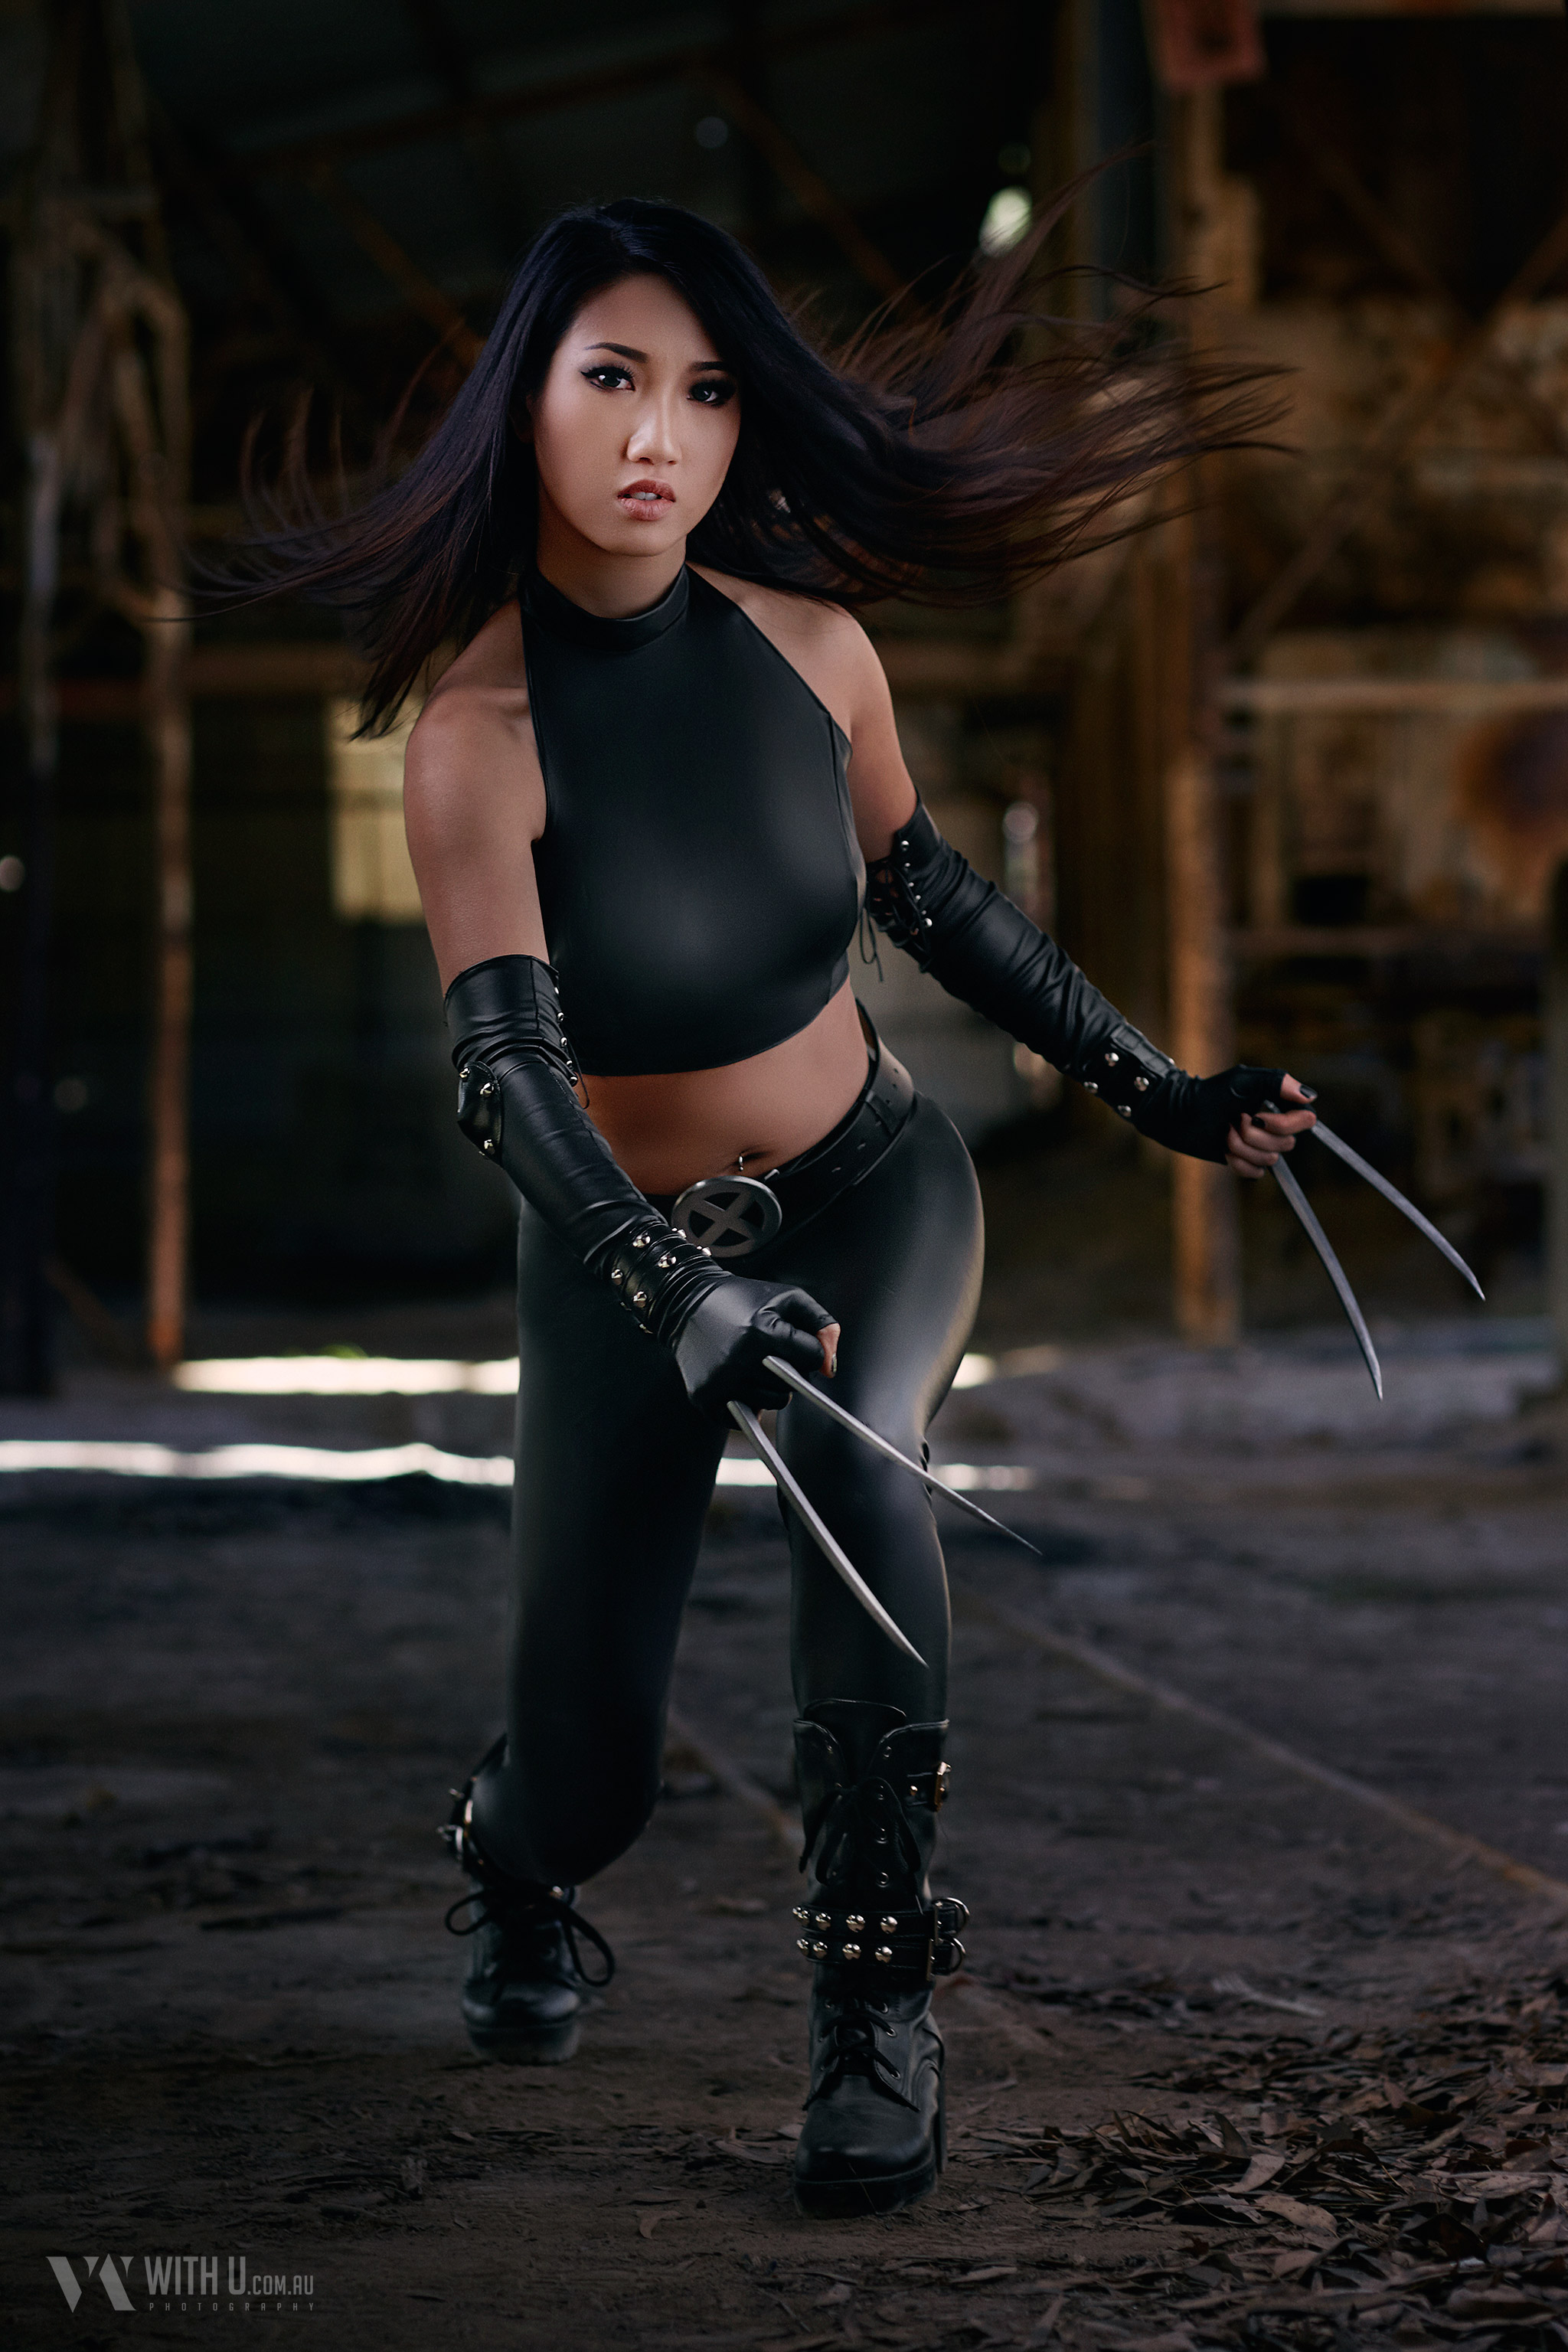 WithU » Wedding photography in Perth » X-23 – Cosplay X 23 Cosplay